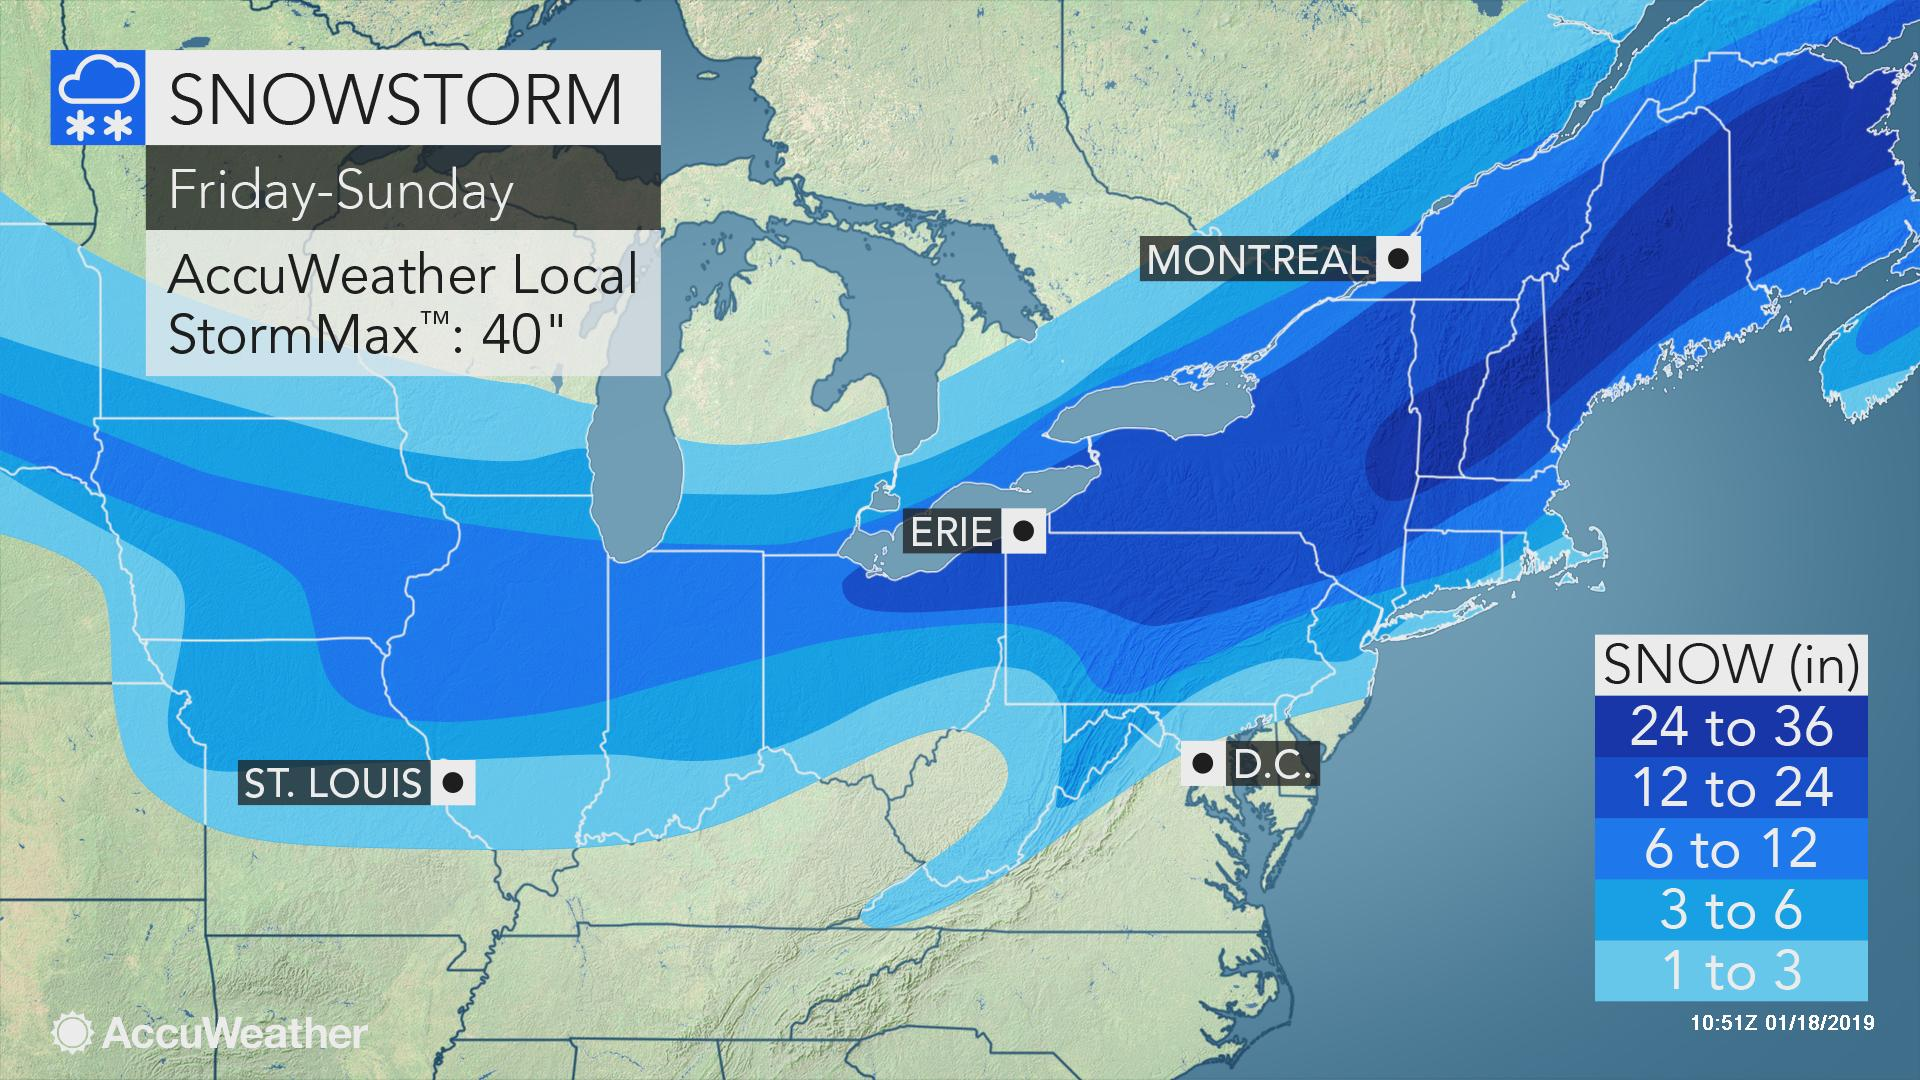 Immobilizing blizzard with feet of snow looms for interior ... on